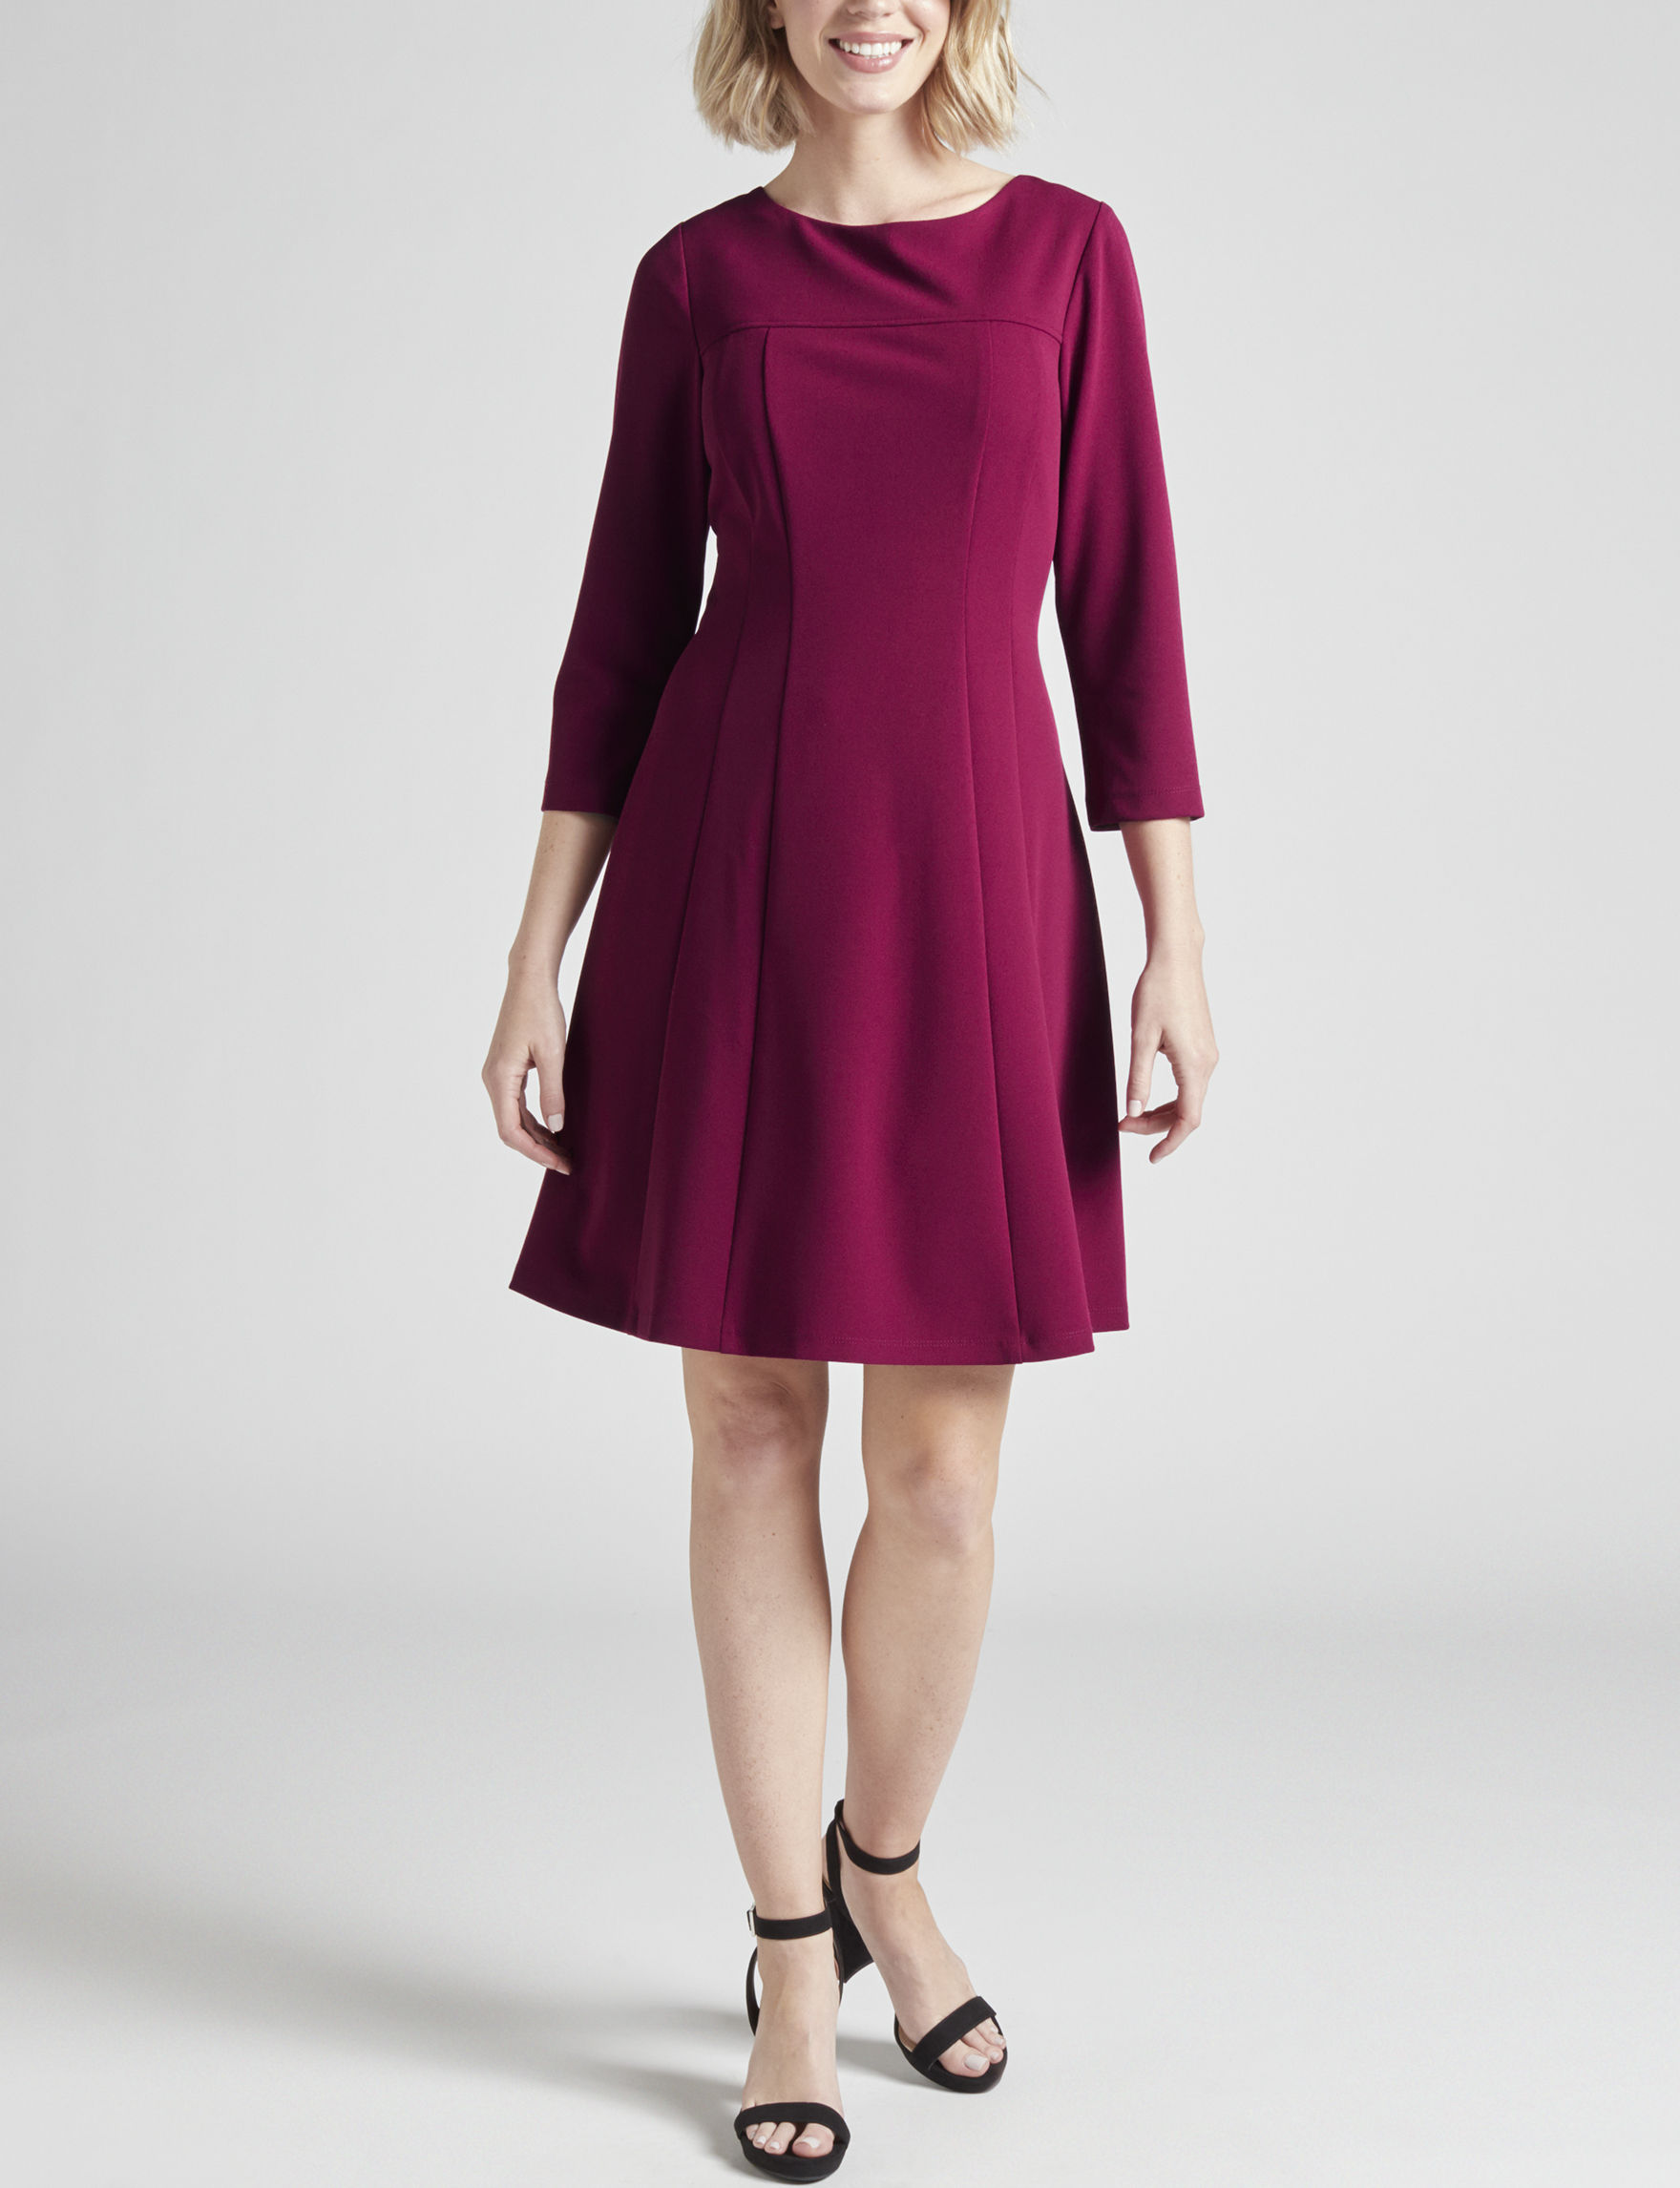 Connected Berry Everyday & Casual A-line Dresses